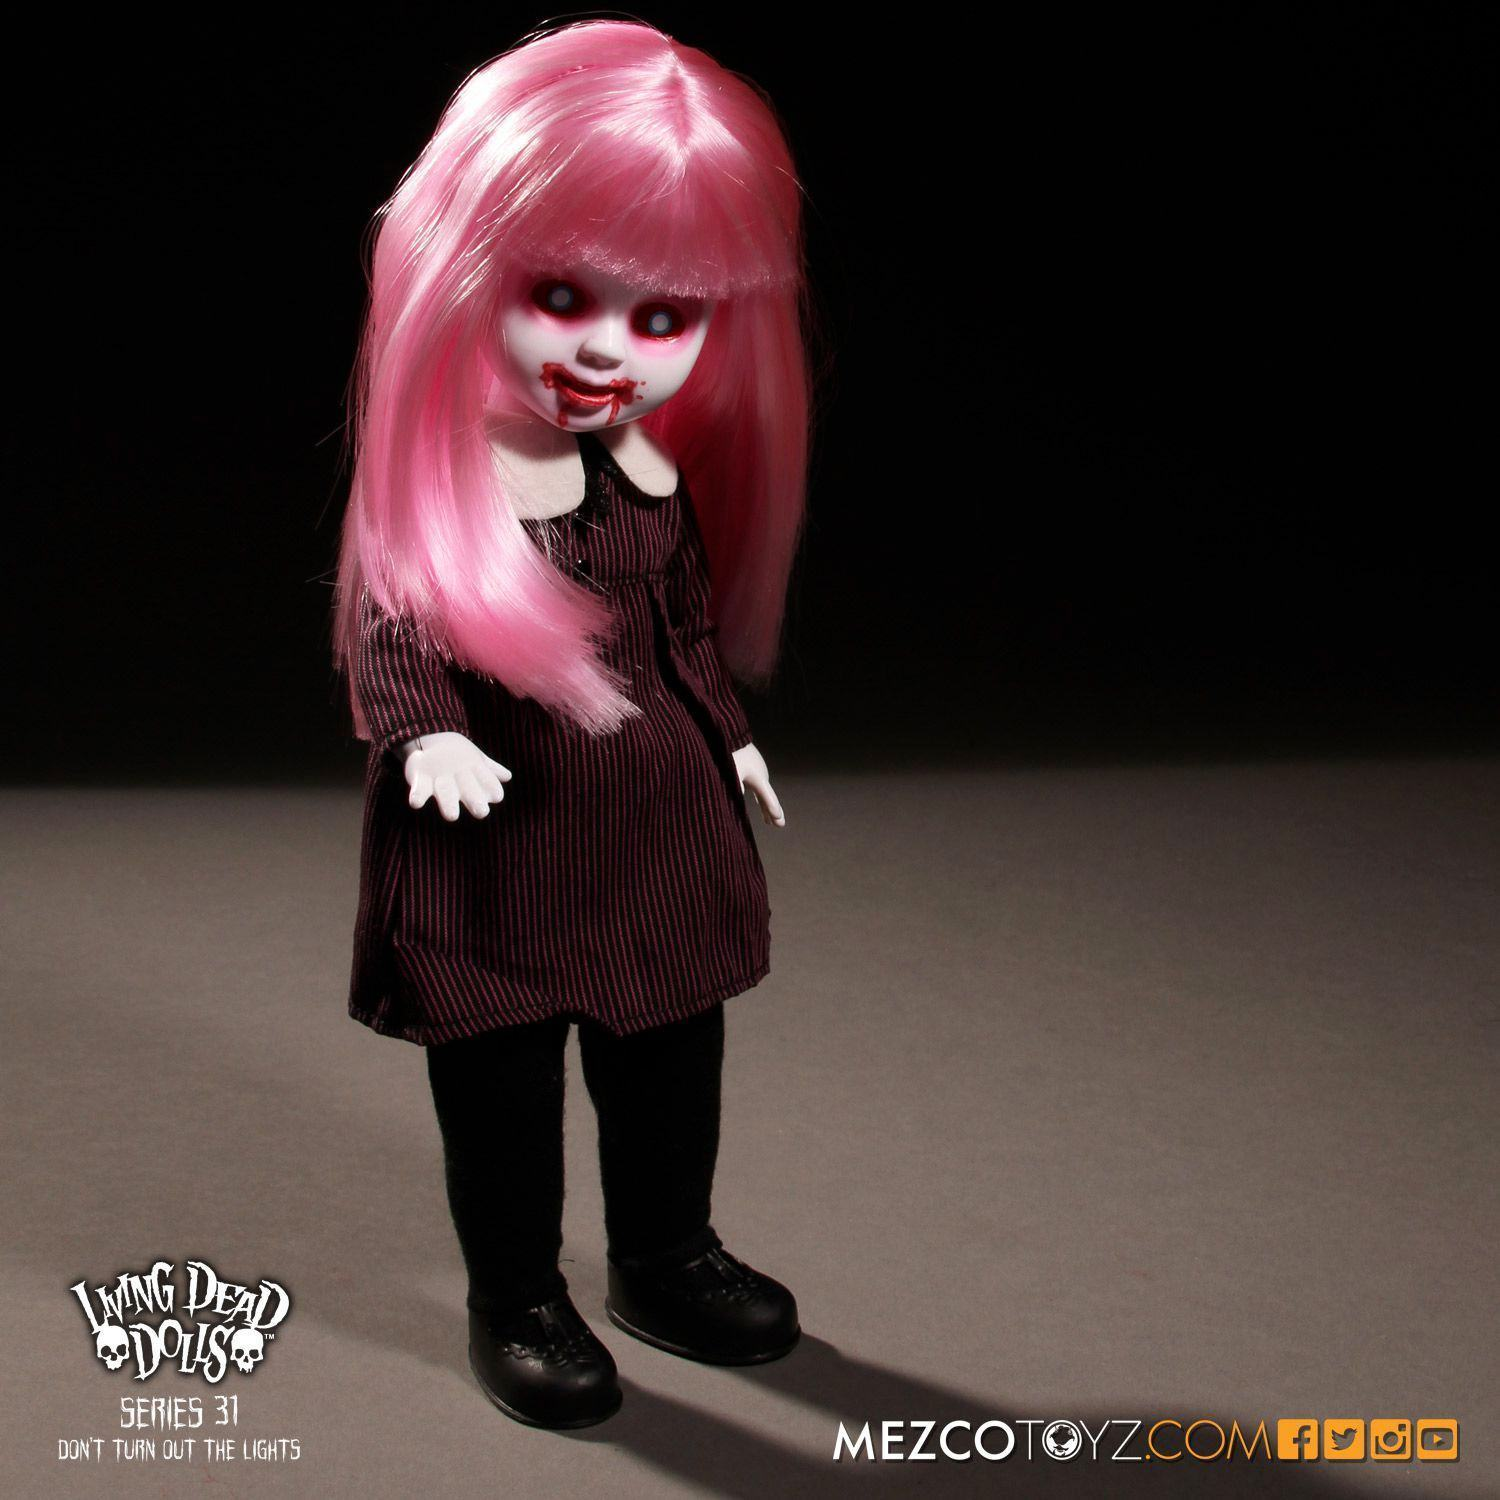 Bonecas-The-Living-Dead-Dolls-Series-31-Dont-Turn-Out-The-Lights-12